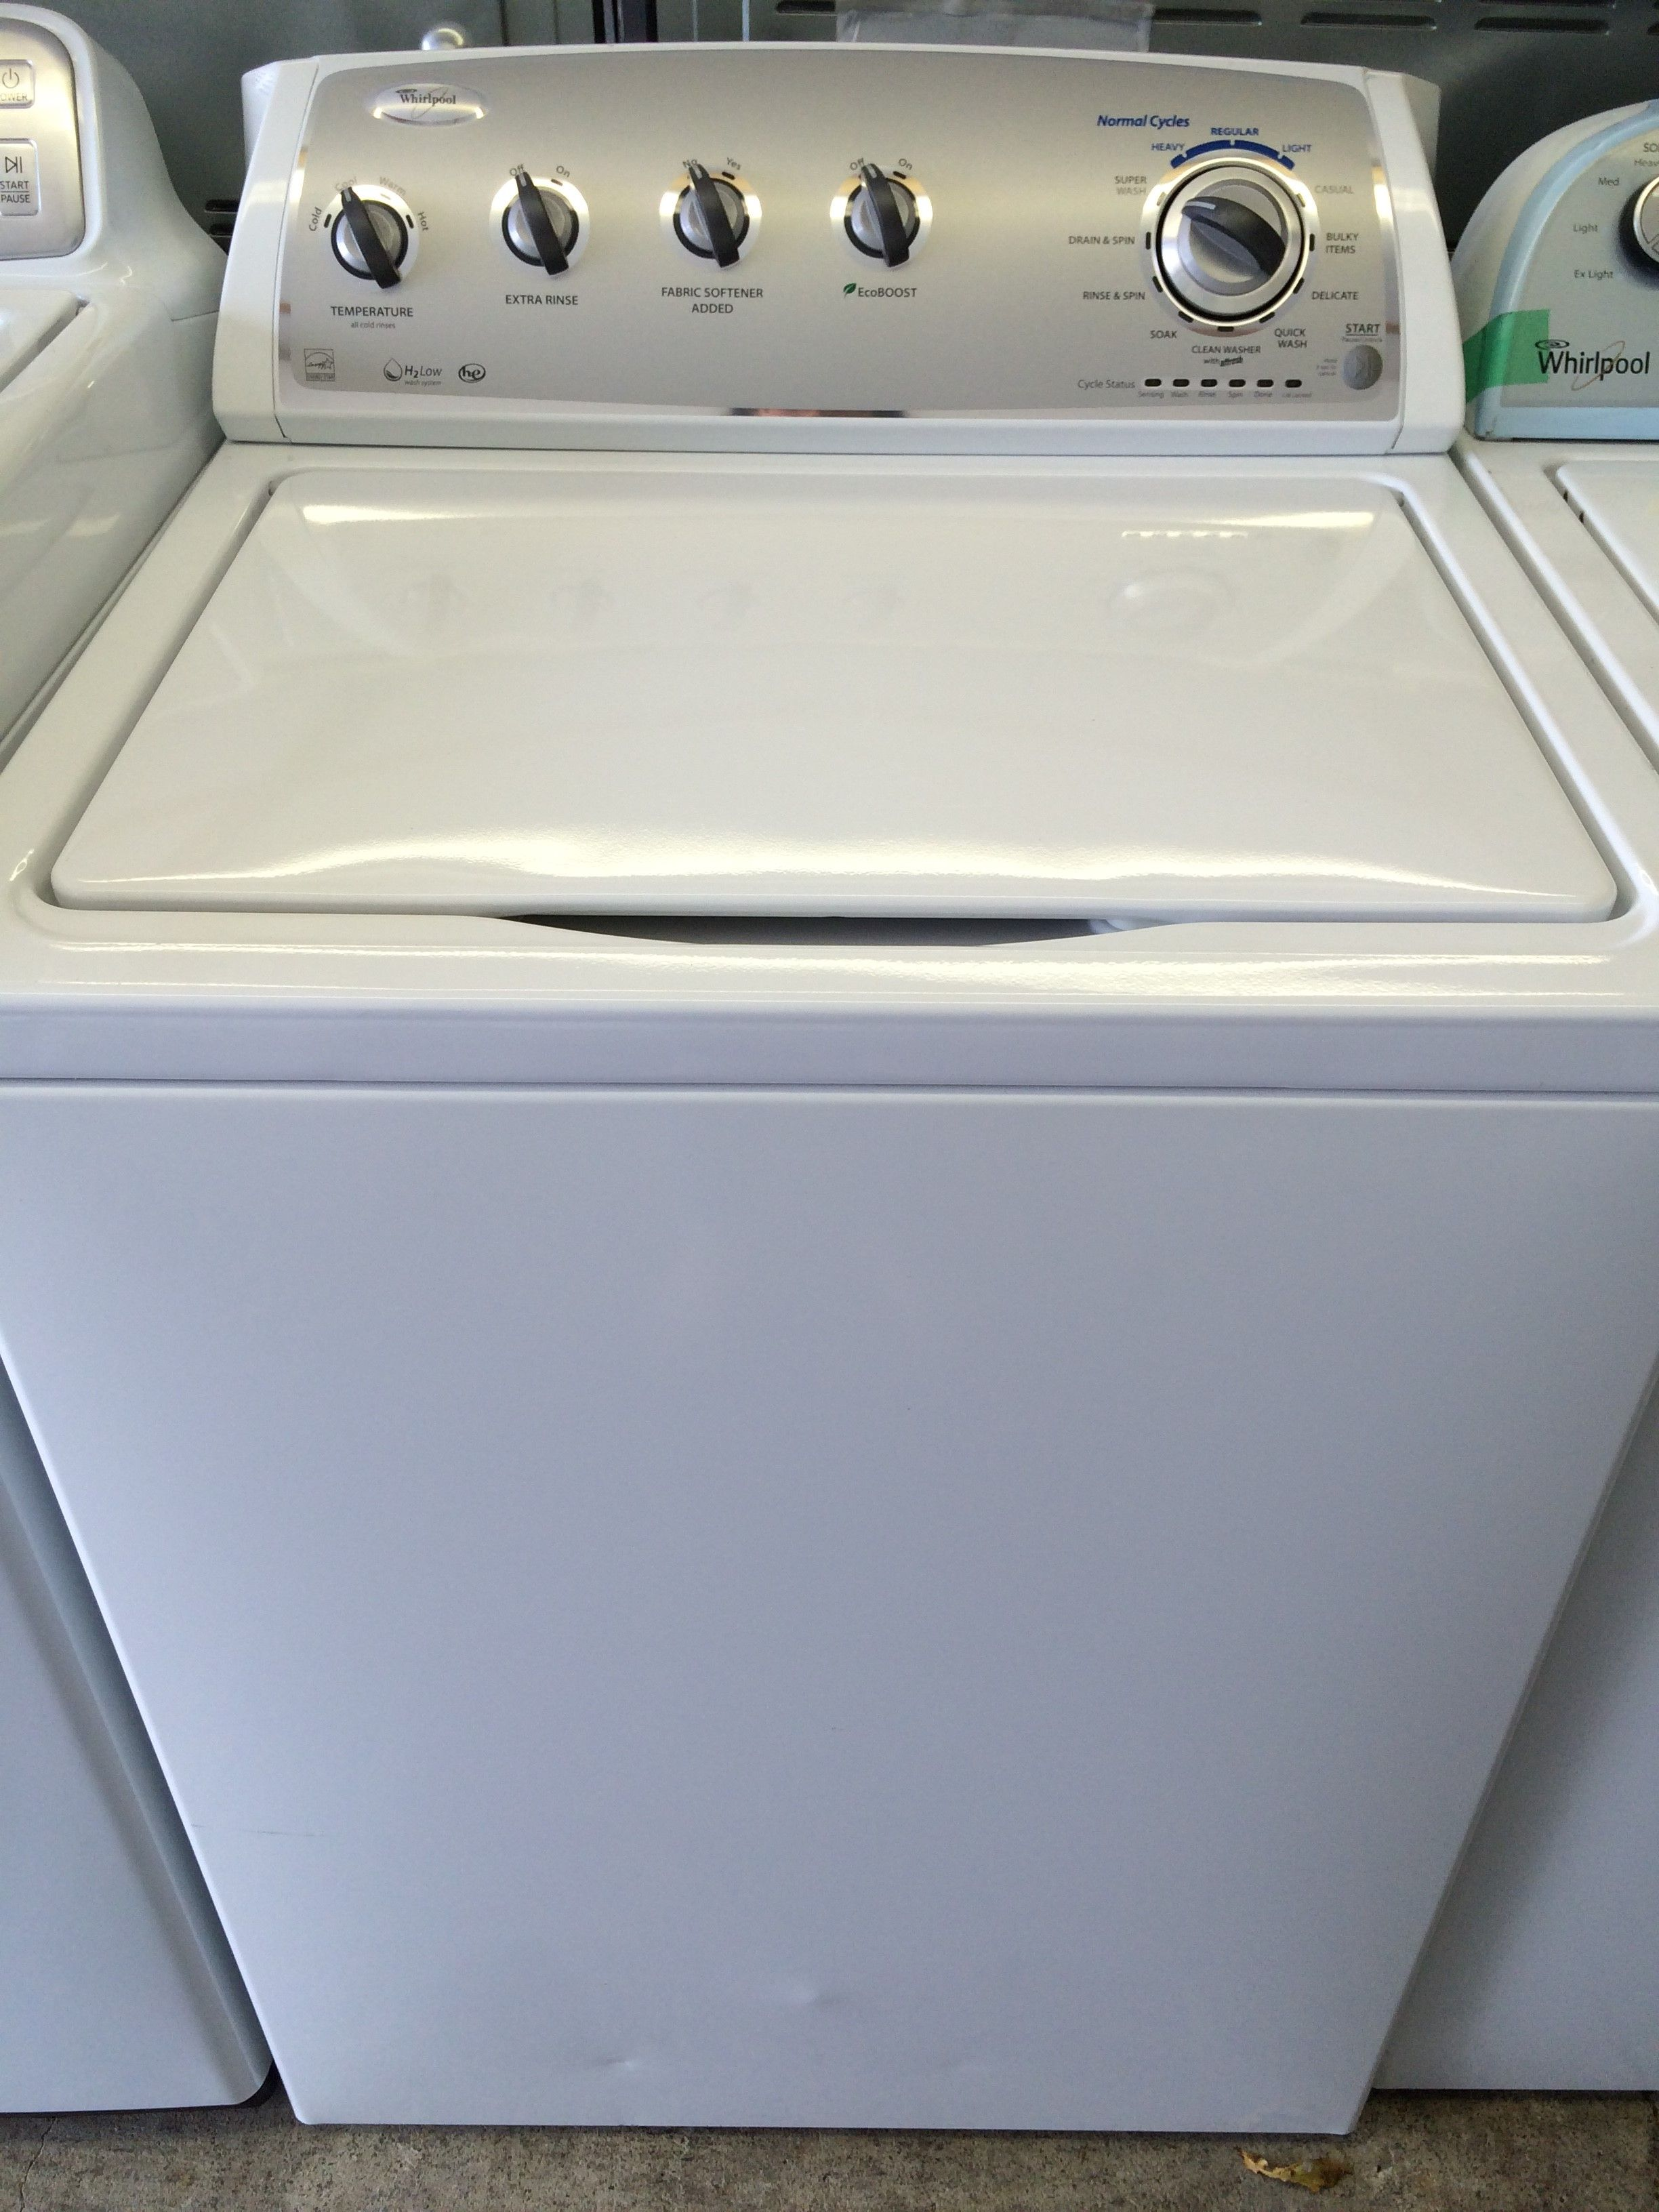 whirlpool top load washer in white appliance store located in